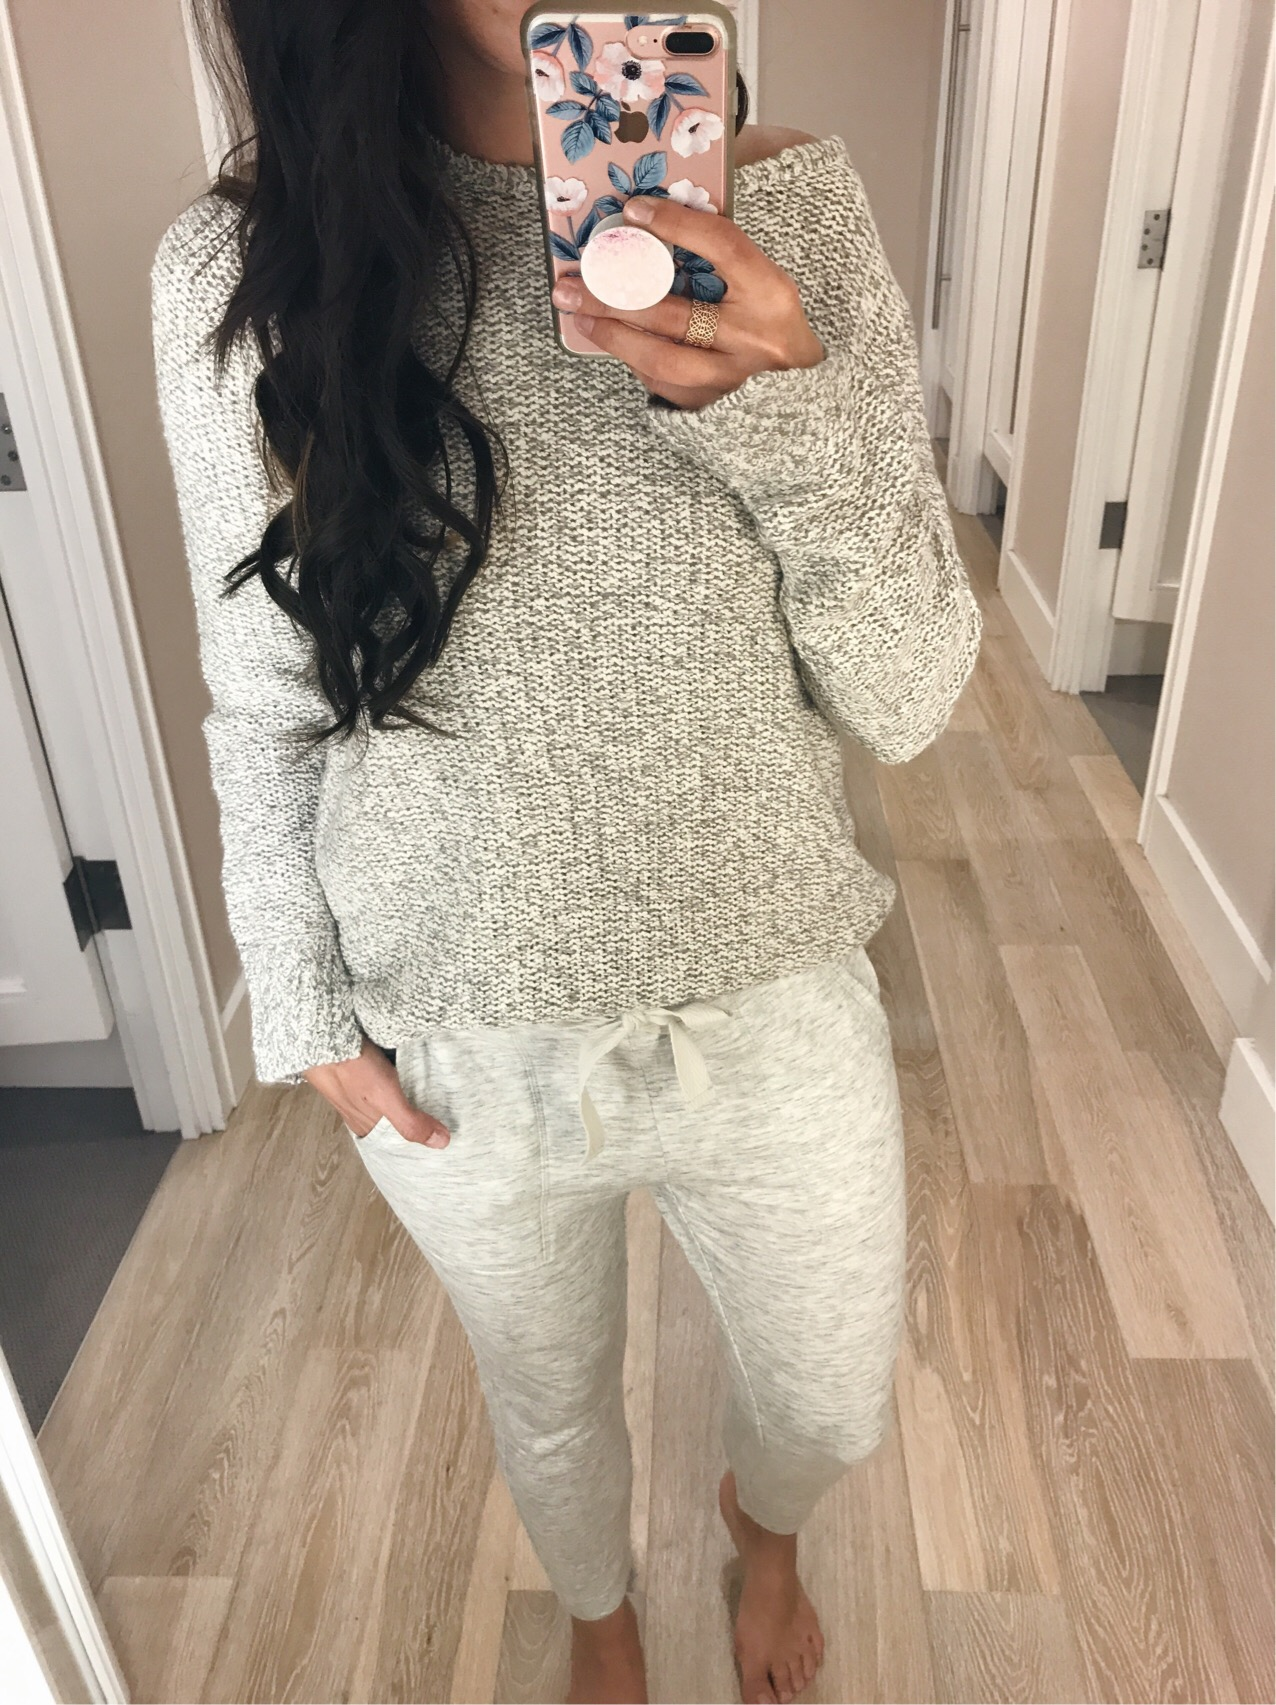 blogger Anna Monterio of Blushing Rose Style wearing LOFT sweater from Labor day weekend sales